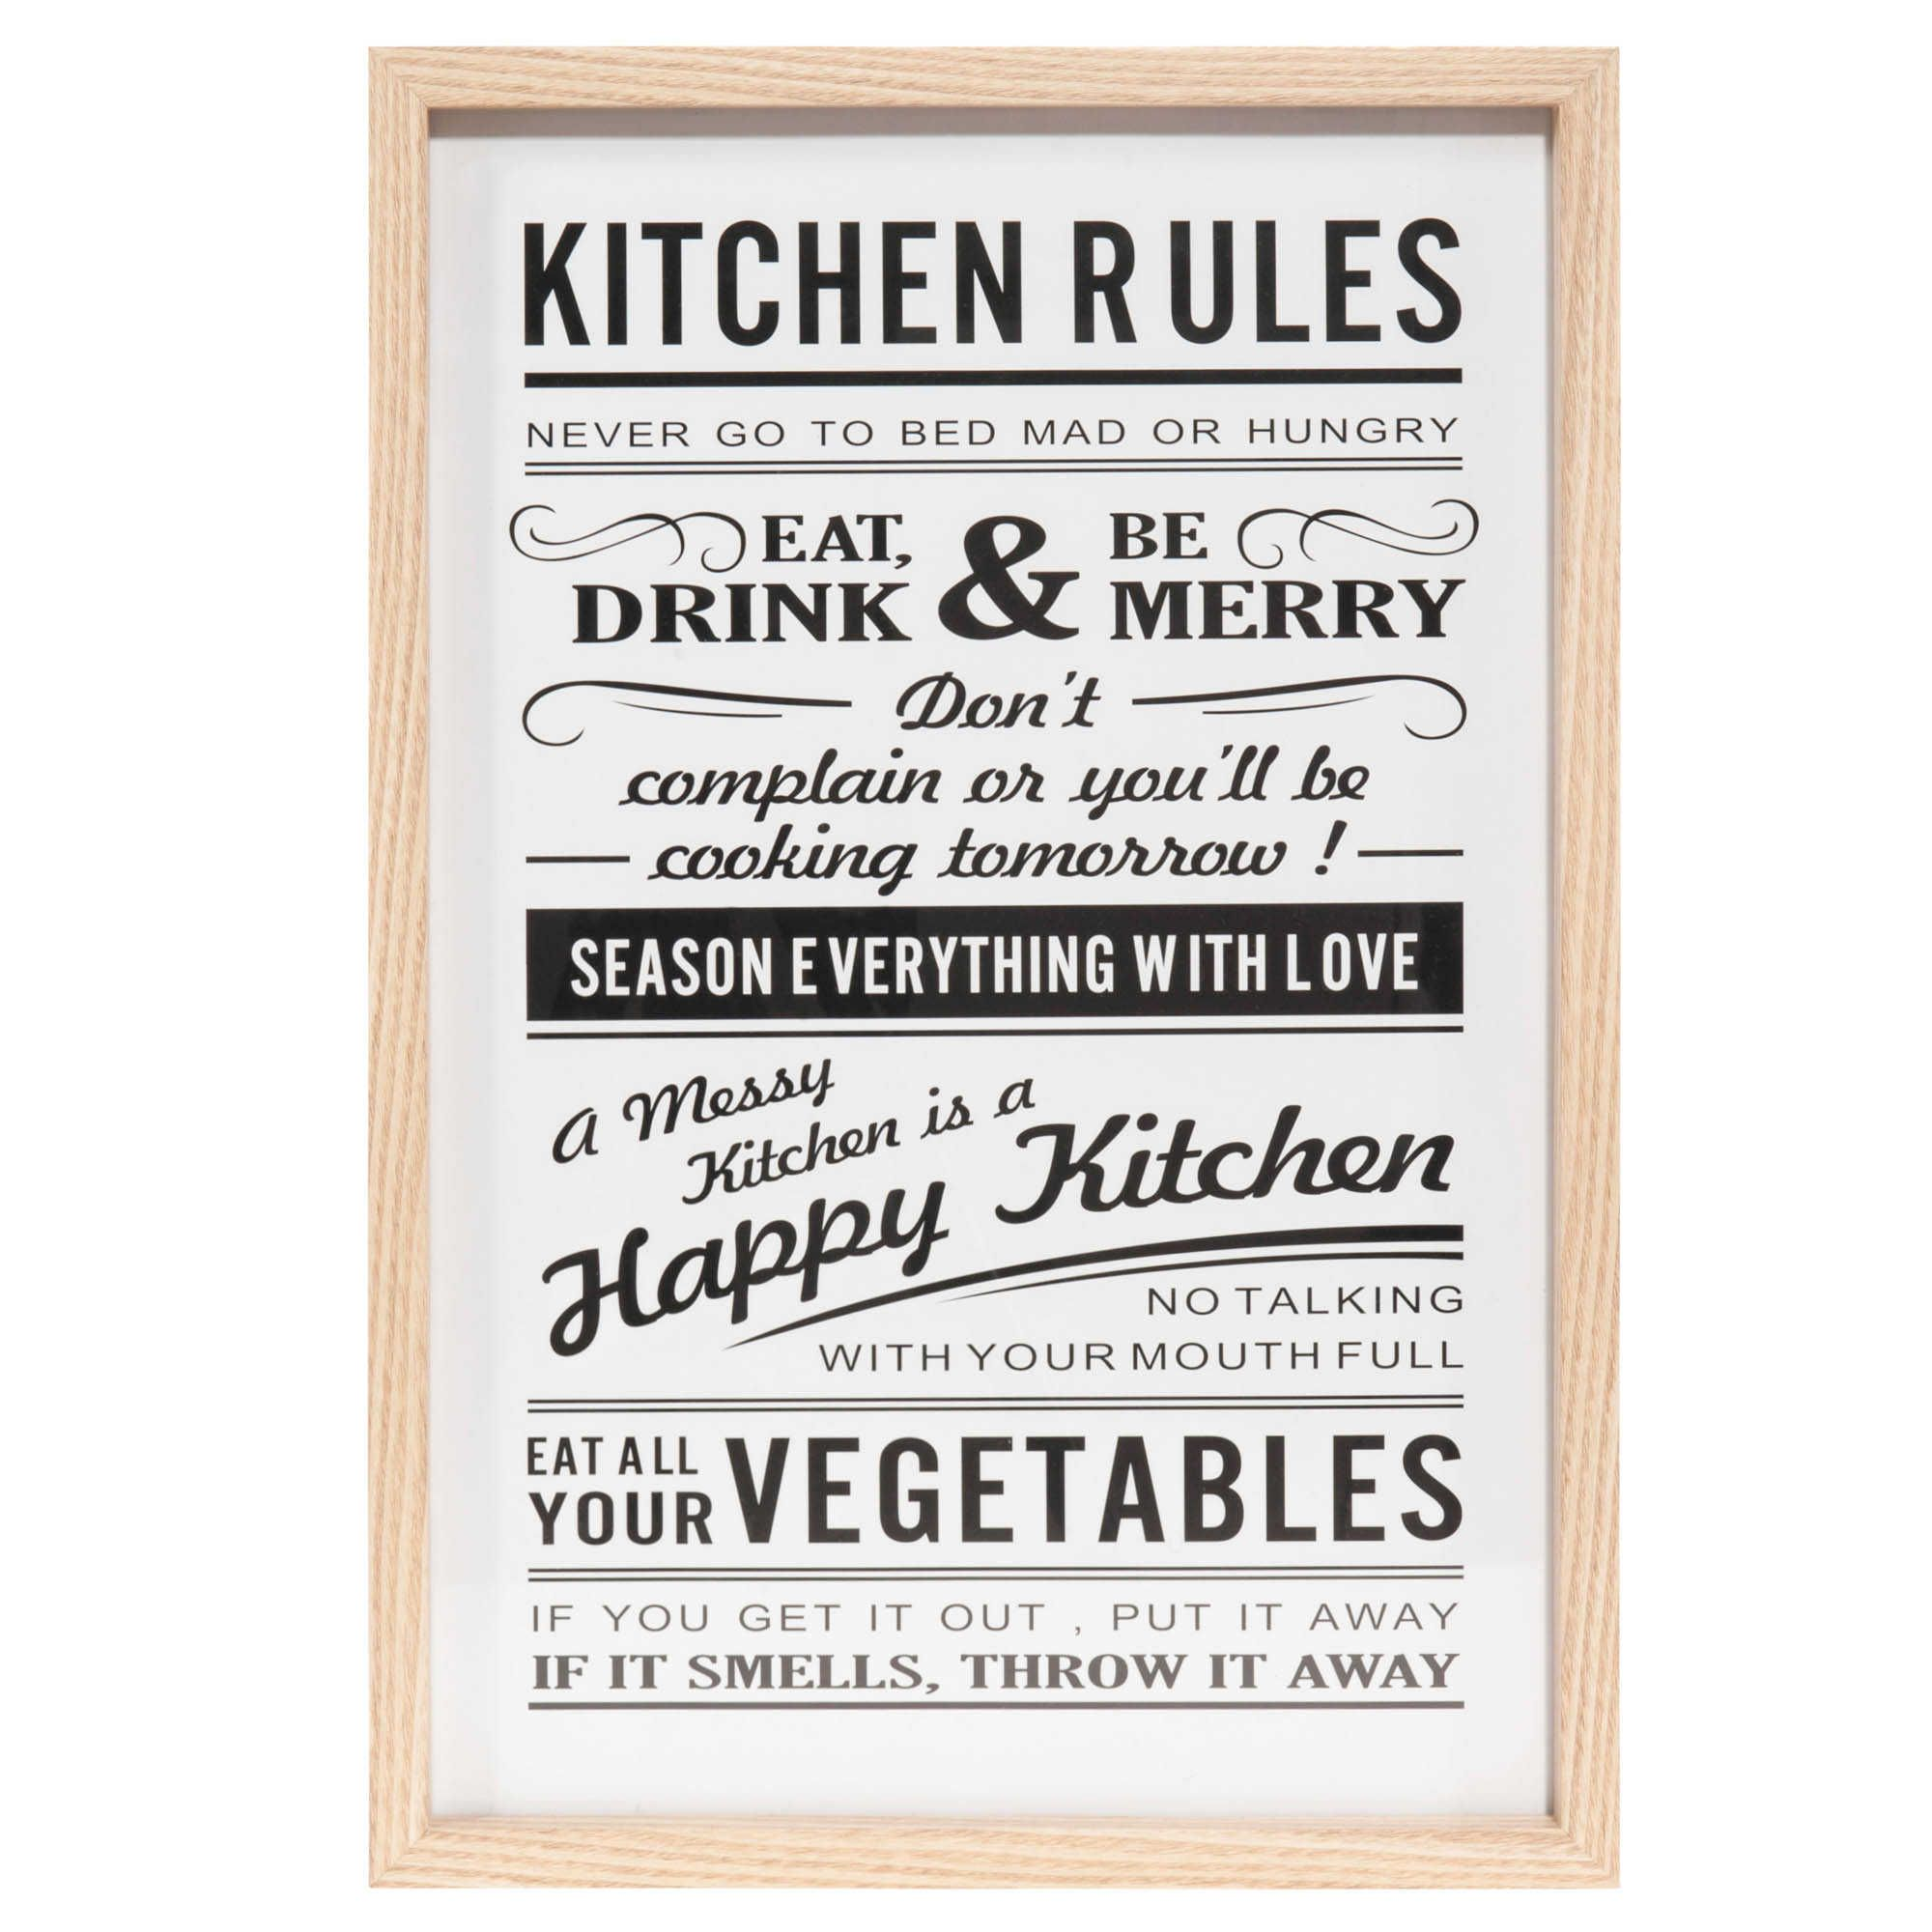 Kitchen Design Rules: Kitchen Rules, Kitchen Decor